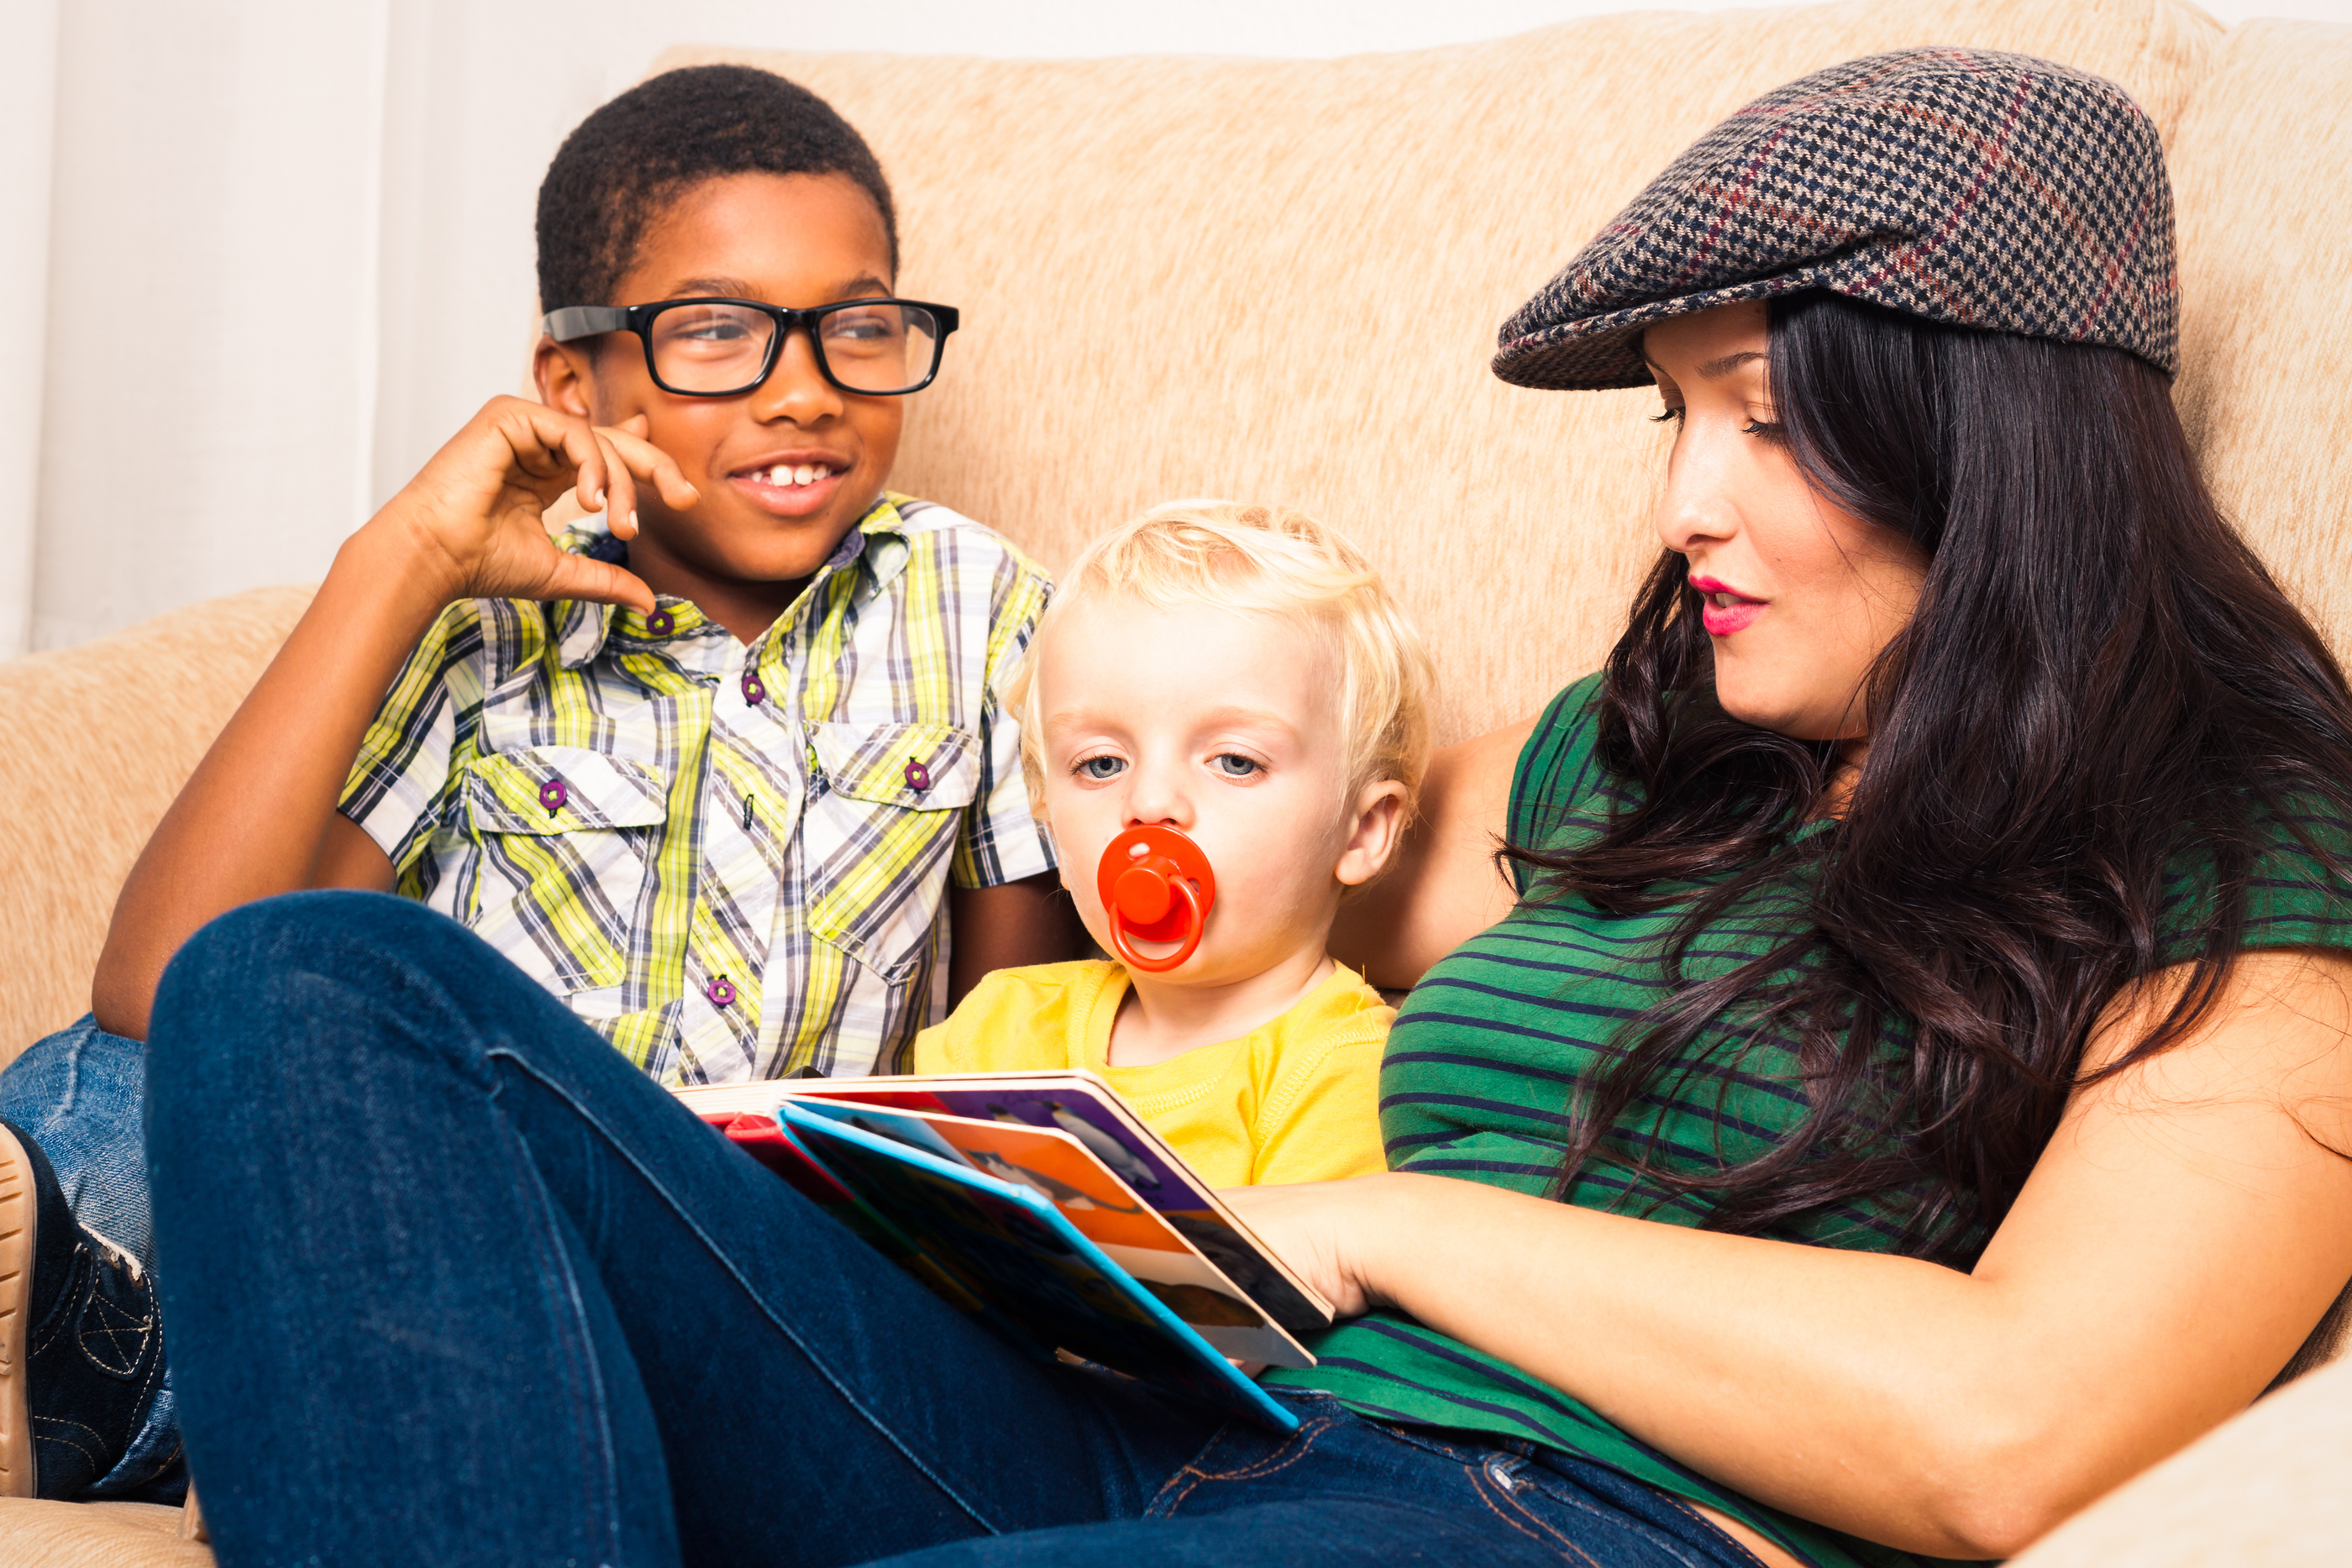 Childcare worker reading to children on the couch